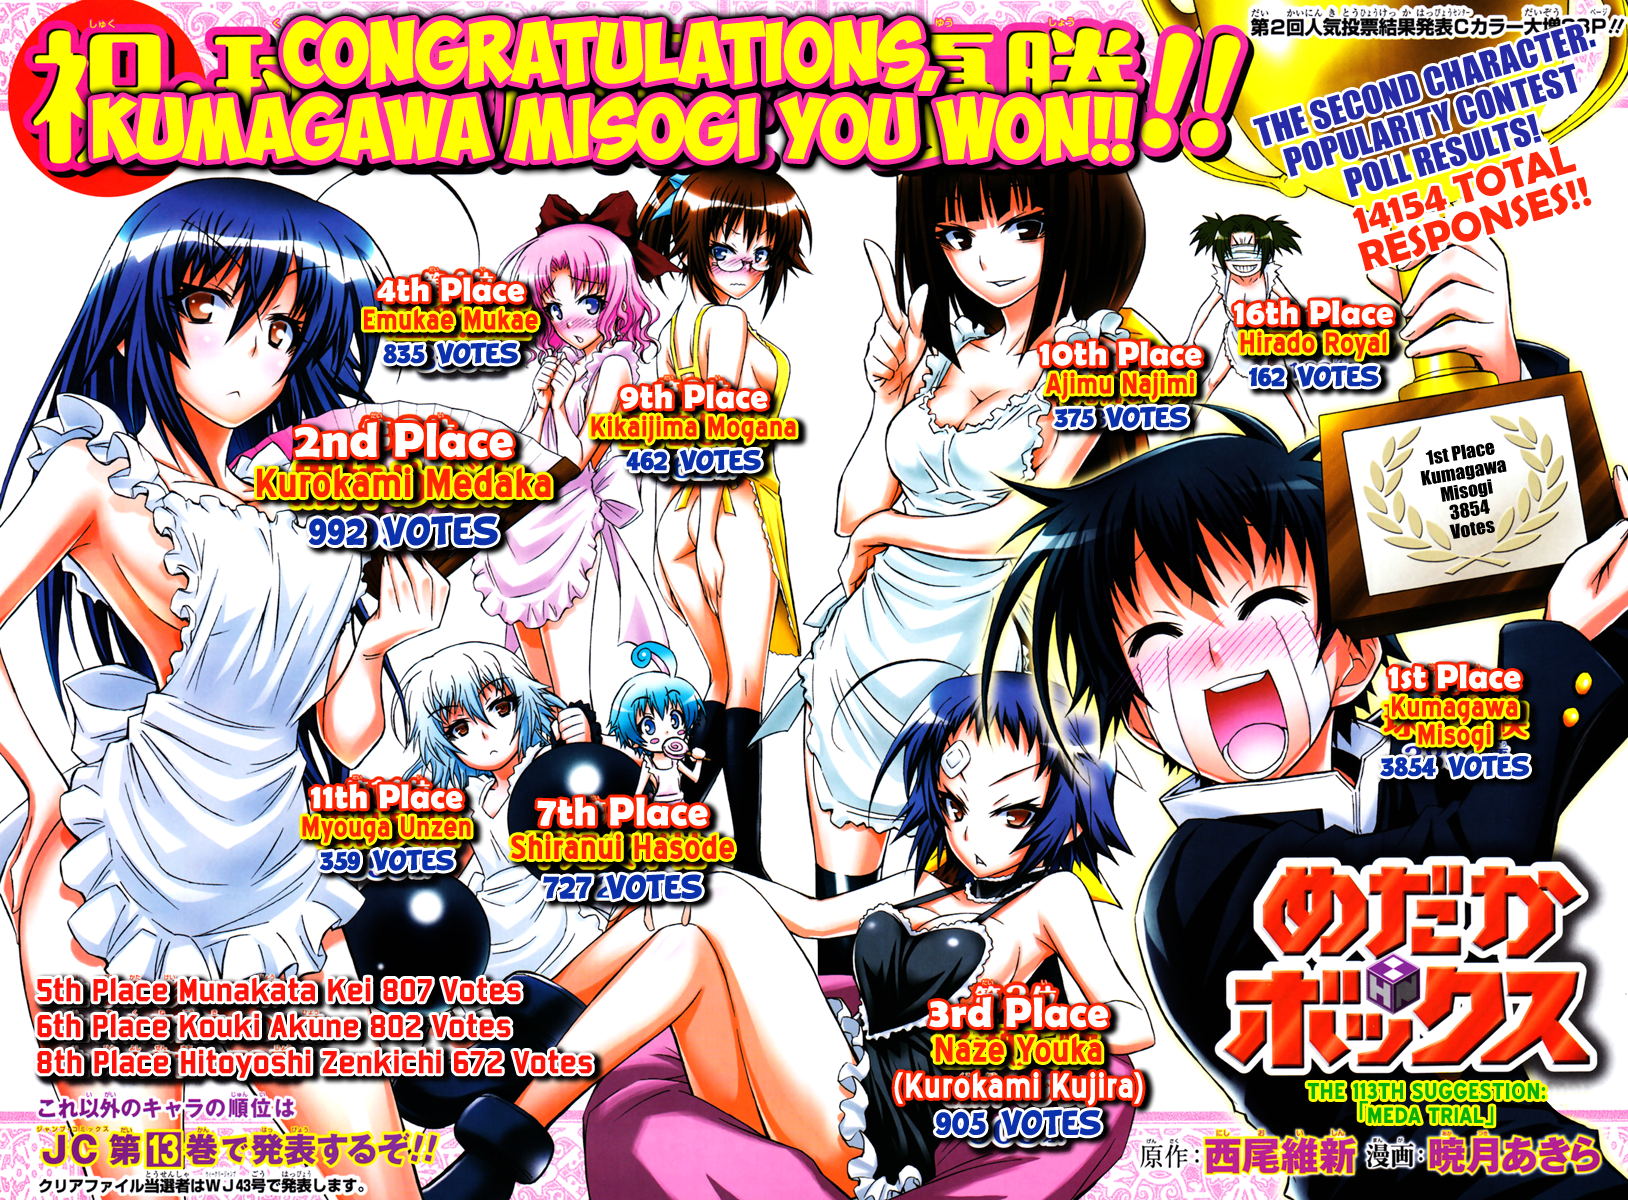 Free Anime Character Popularity Poll : Popularity polls medaka box wiki your guide to the